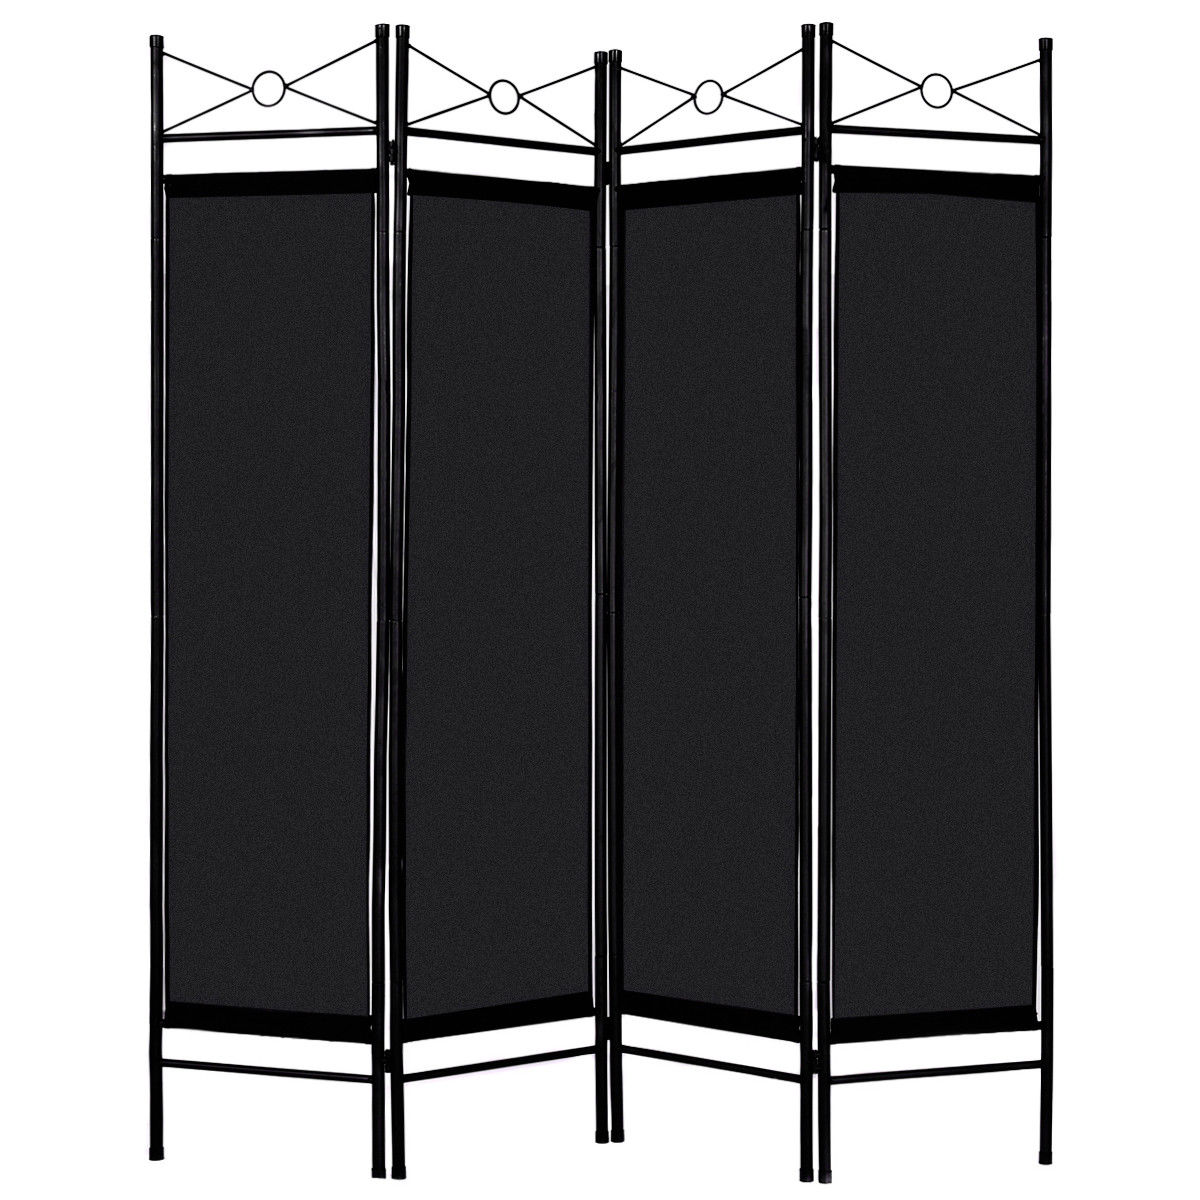 Superieur Costway Black 4 Panel Room Divider Privacy Screen Home Office Fabric Metal  Frame